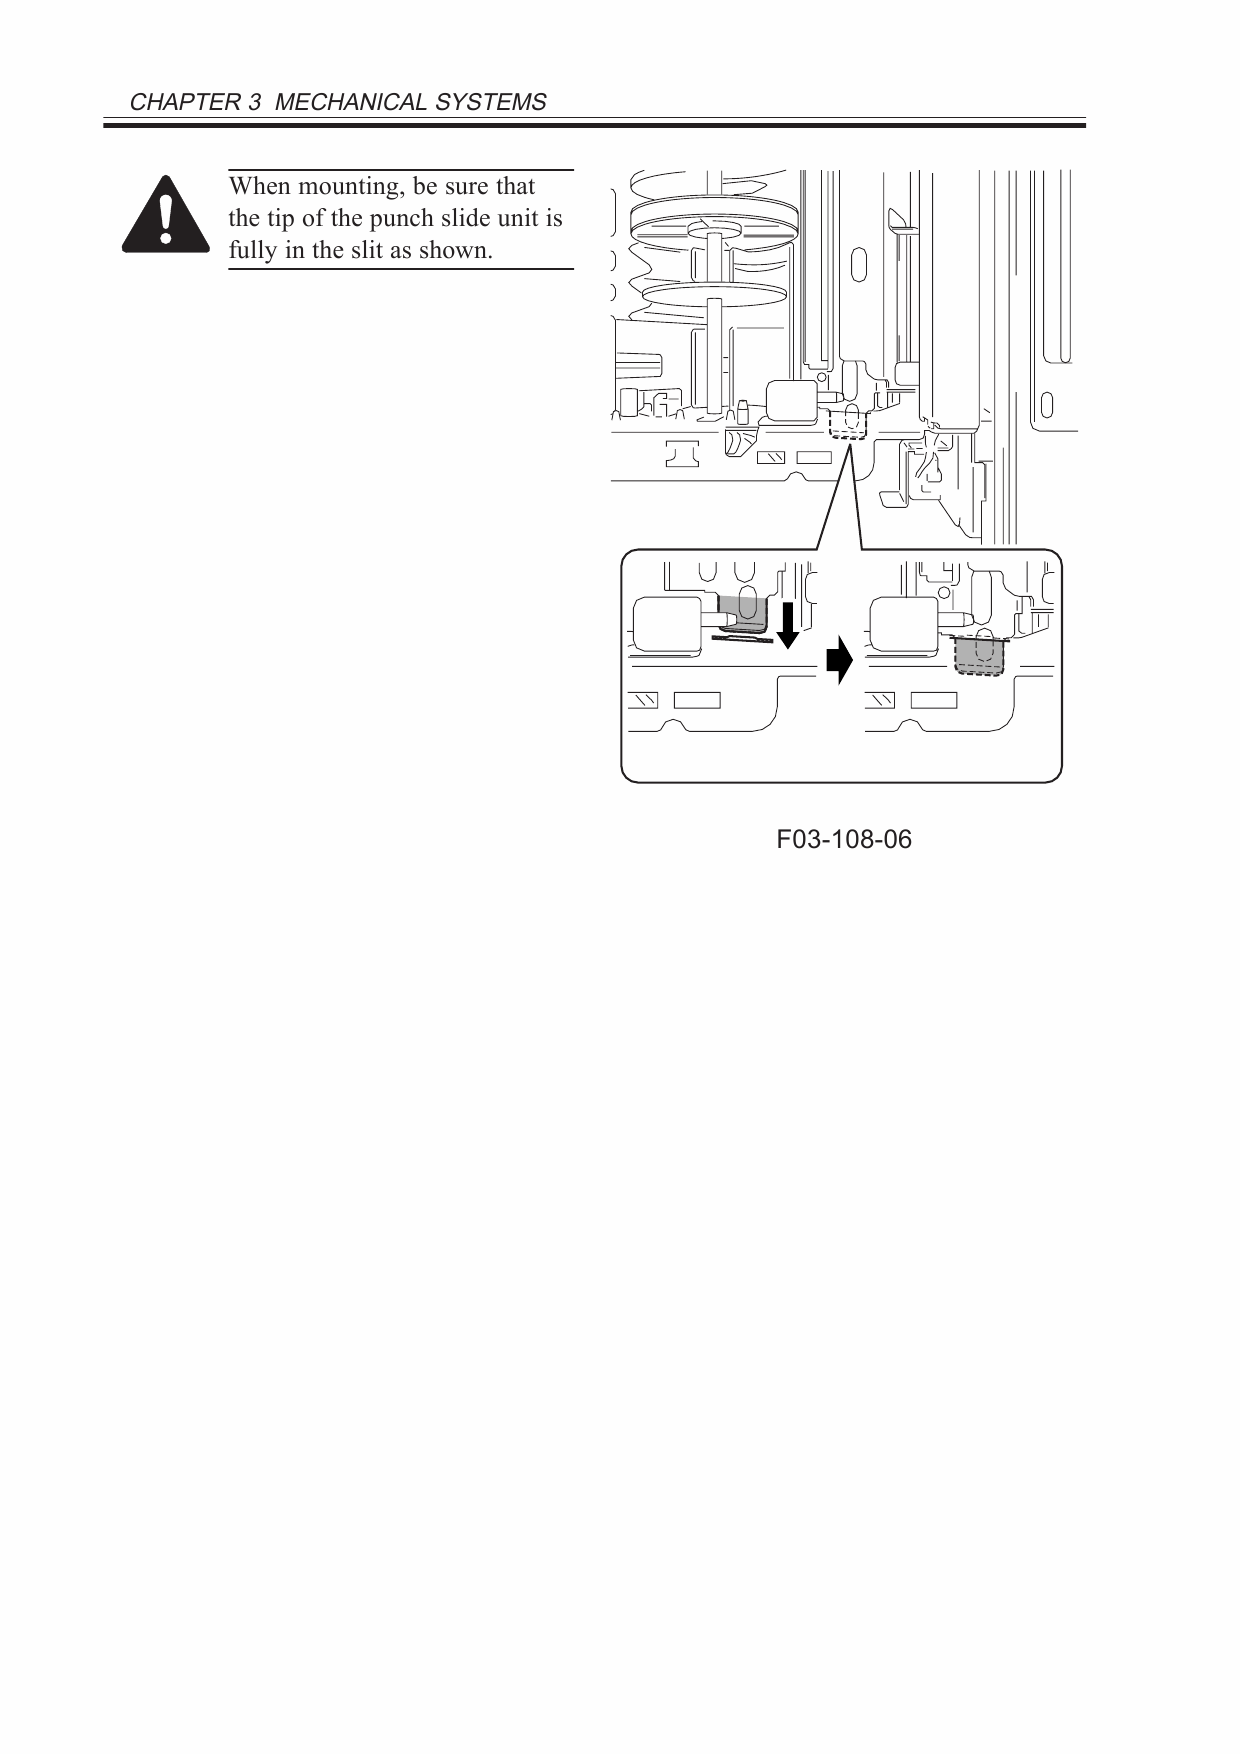 canon options finisher k1 k2 parts and service manual. Black Bedroom Furniture Sets. Home Design Ideas